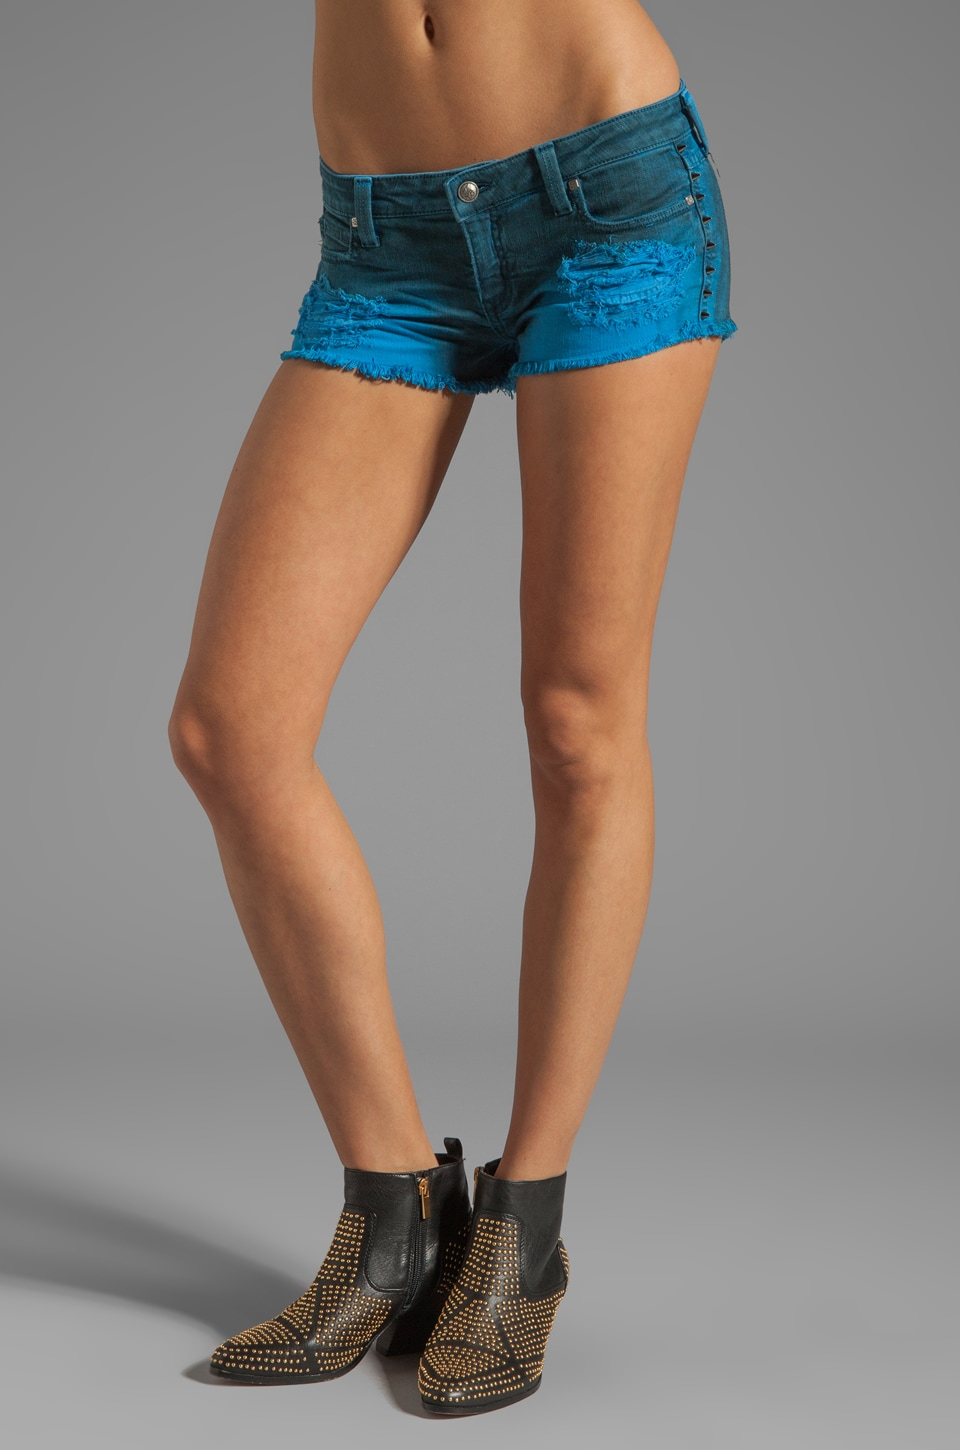 Frankie B. Jeans Underworld Short in Dirty Turquoise